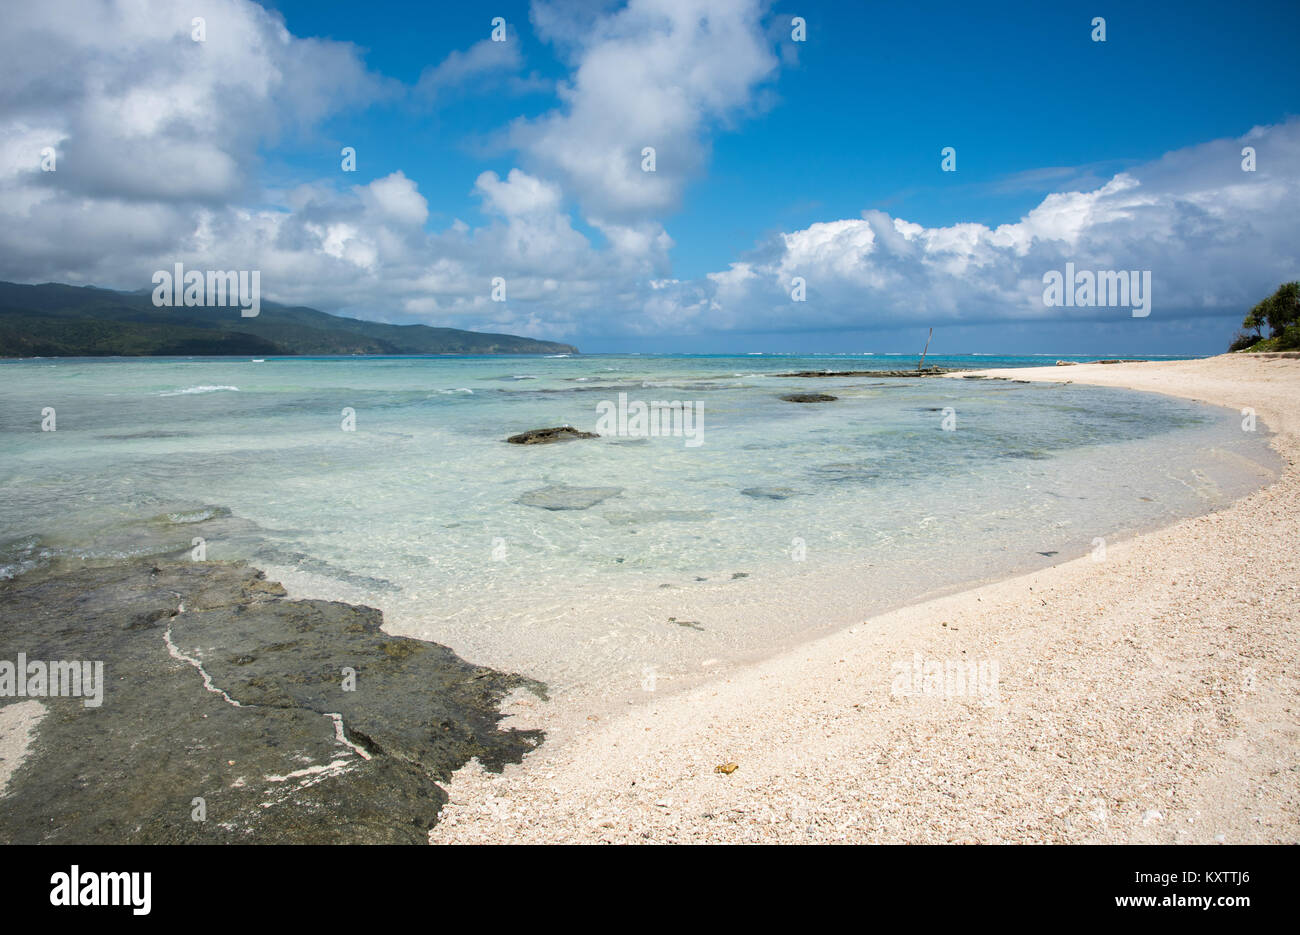 Peaceful beach with mountain view, coastal rock and seascape at Mystery Island, Vanuatu - Stock Image